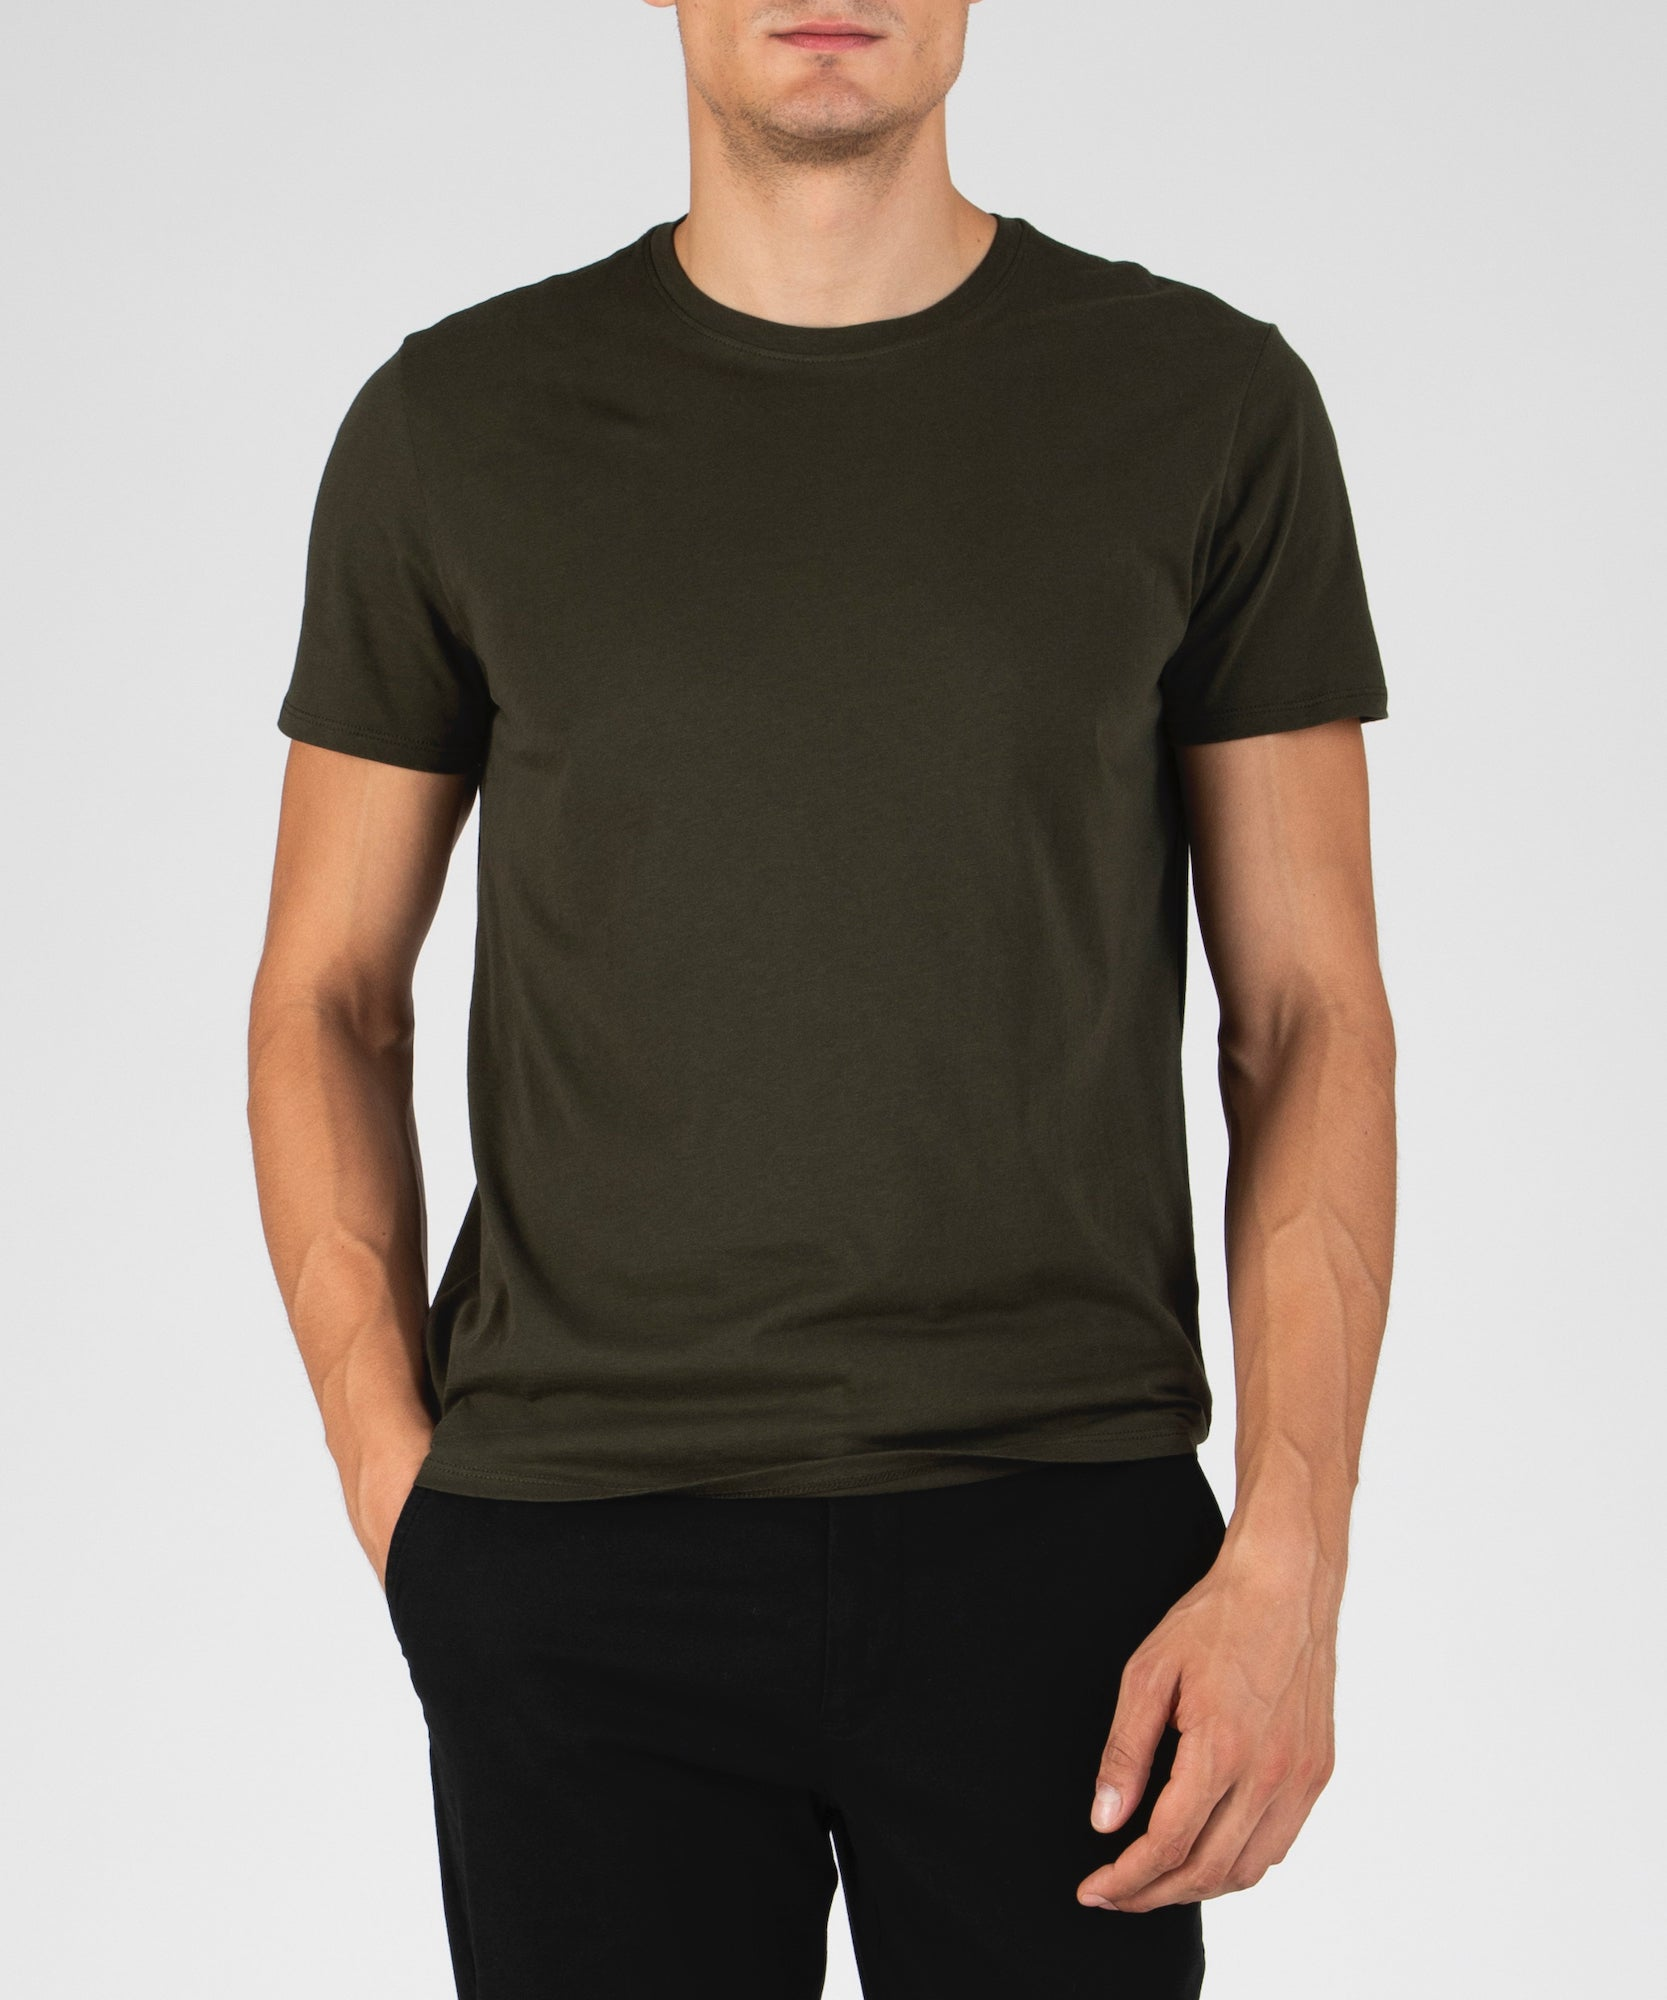 Jungle Green Classic Jersey Crew Neck Tee - Men's Cotton Short Sleeve T-shirt by ATM Anthony Thomas Melillo